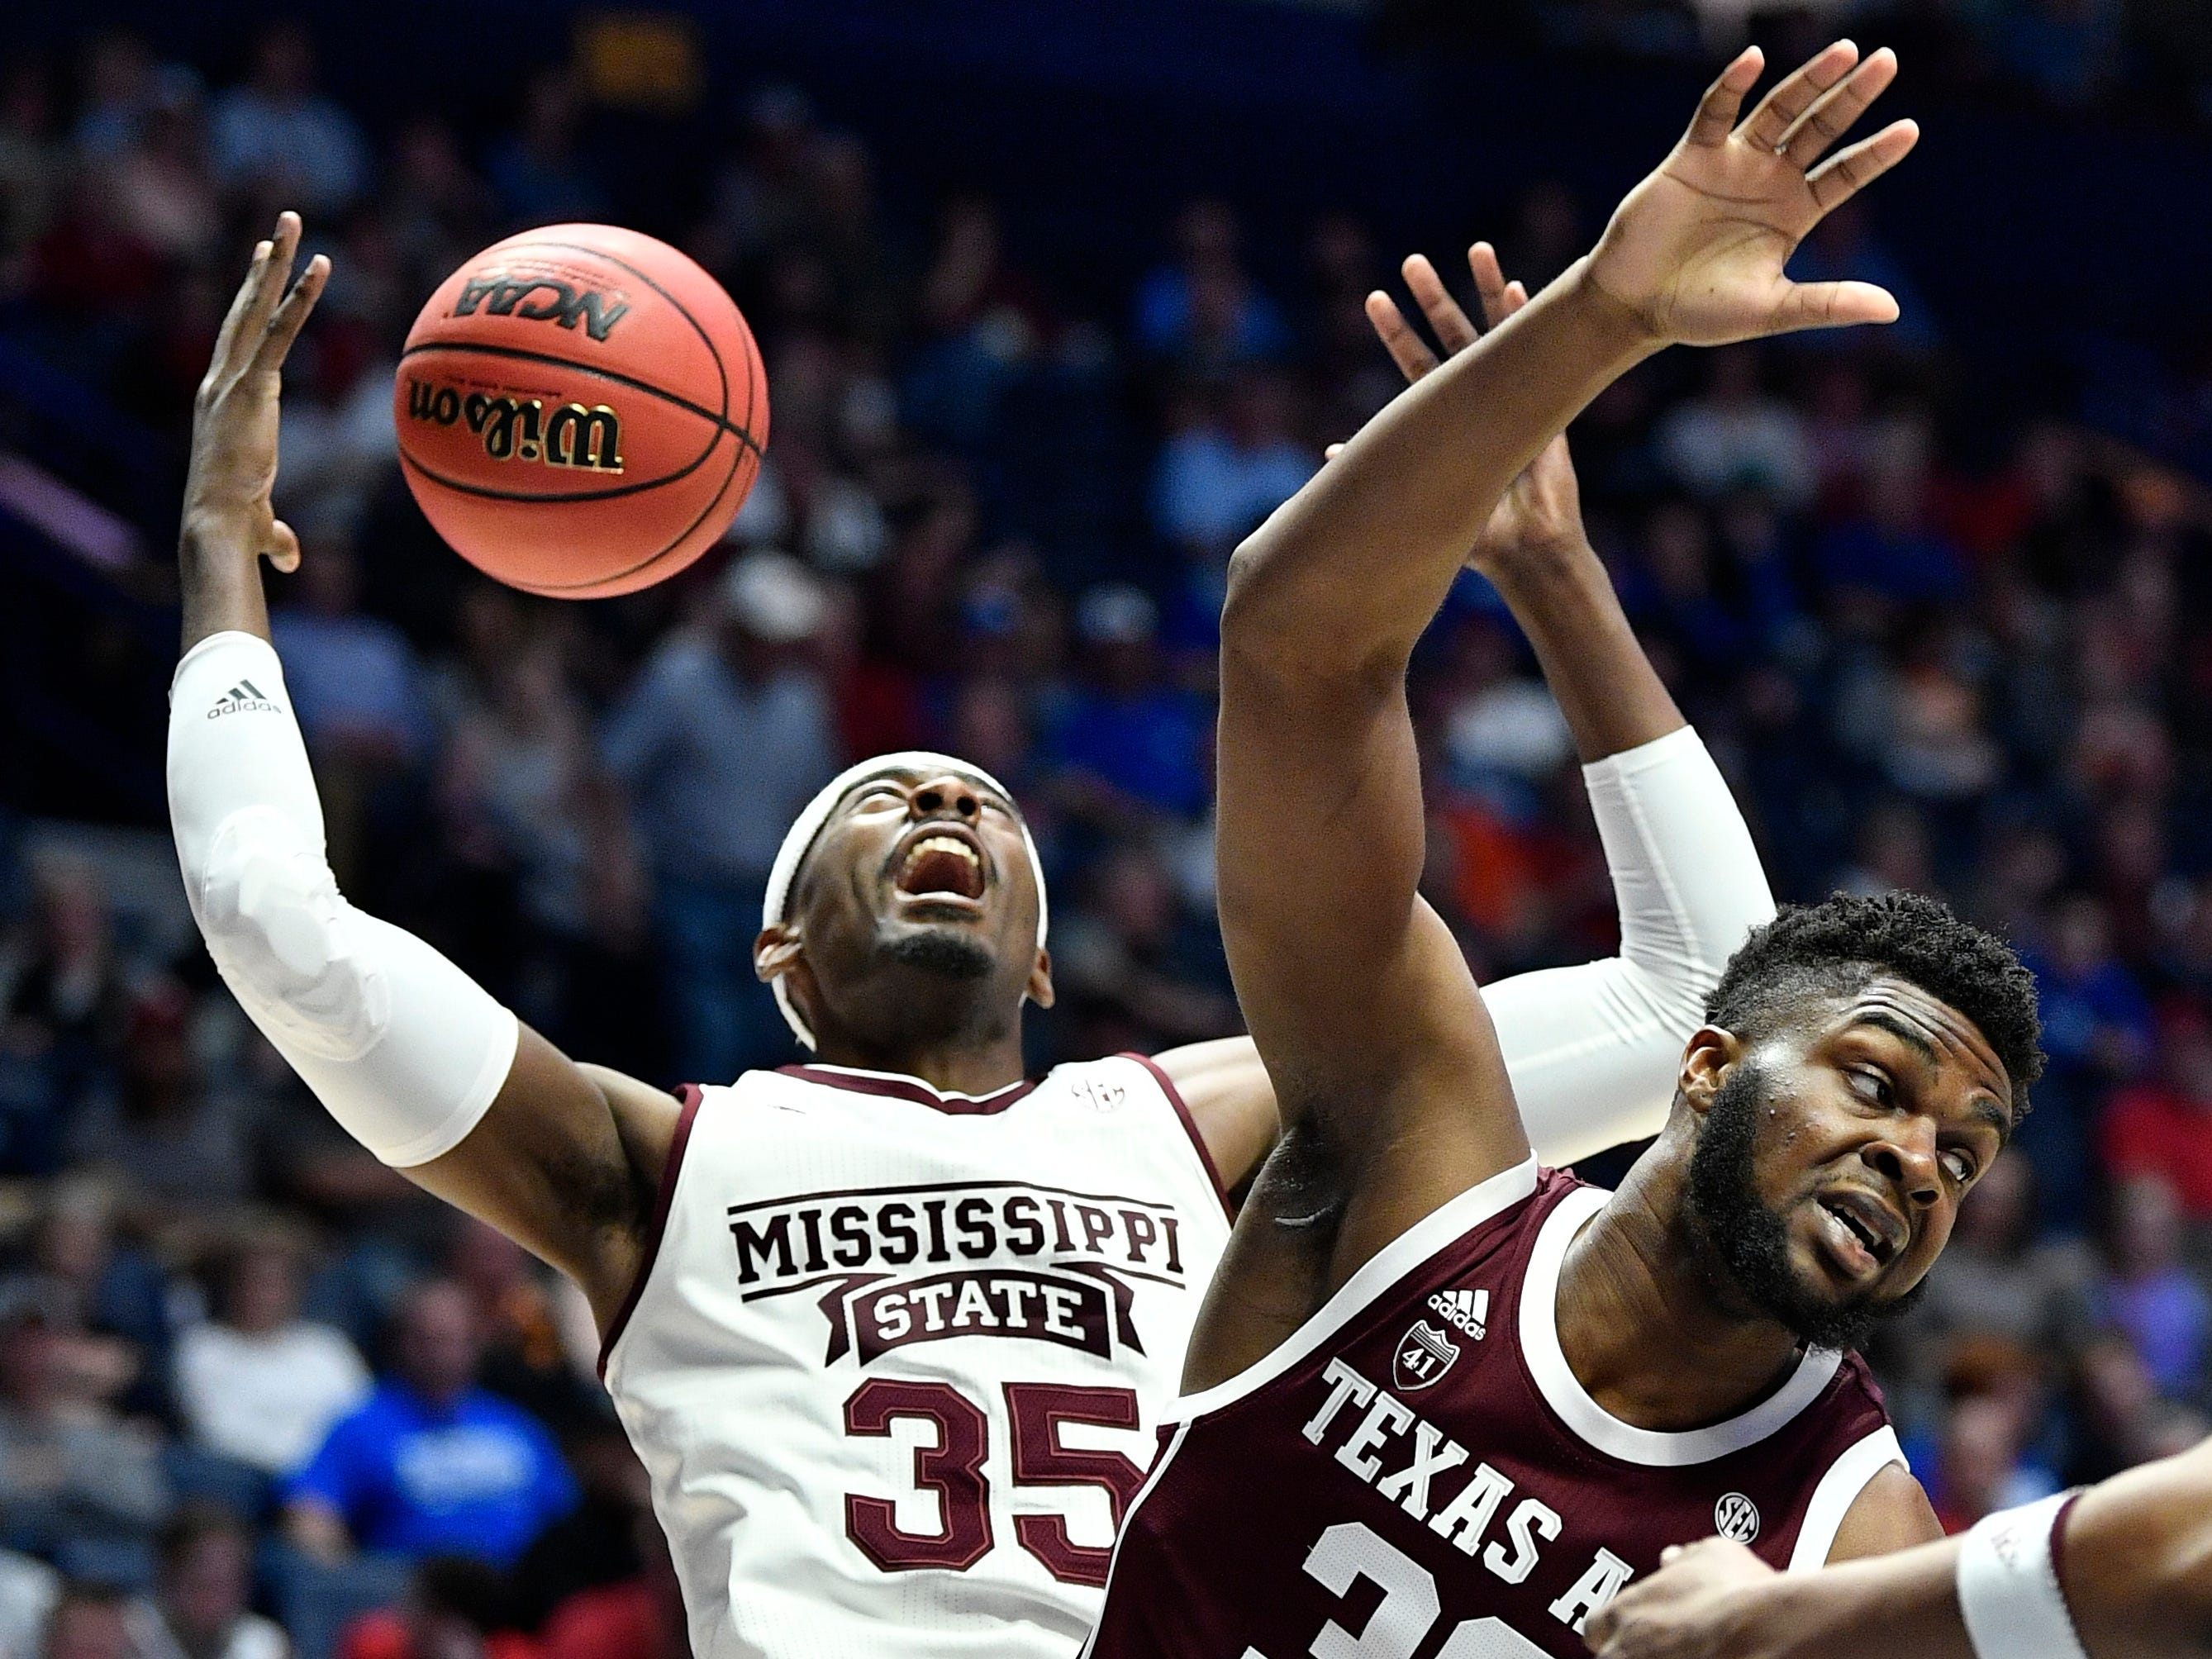 Mississippi State forward Aric Holman (35) and Texas A&M forward Josh Nebo (32) battle for the ball during the first half of the SEC Men's Basketball Tournament game at Bridgestone Arena in Nashville, Tenn., Thursday, March 14, 2019.